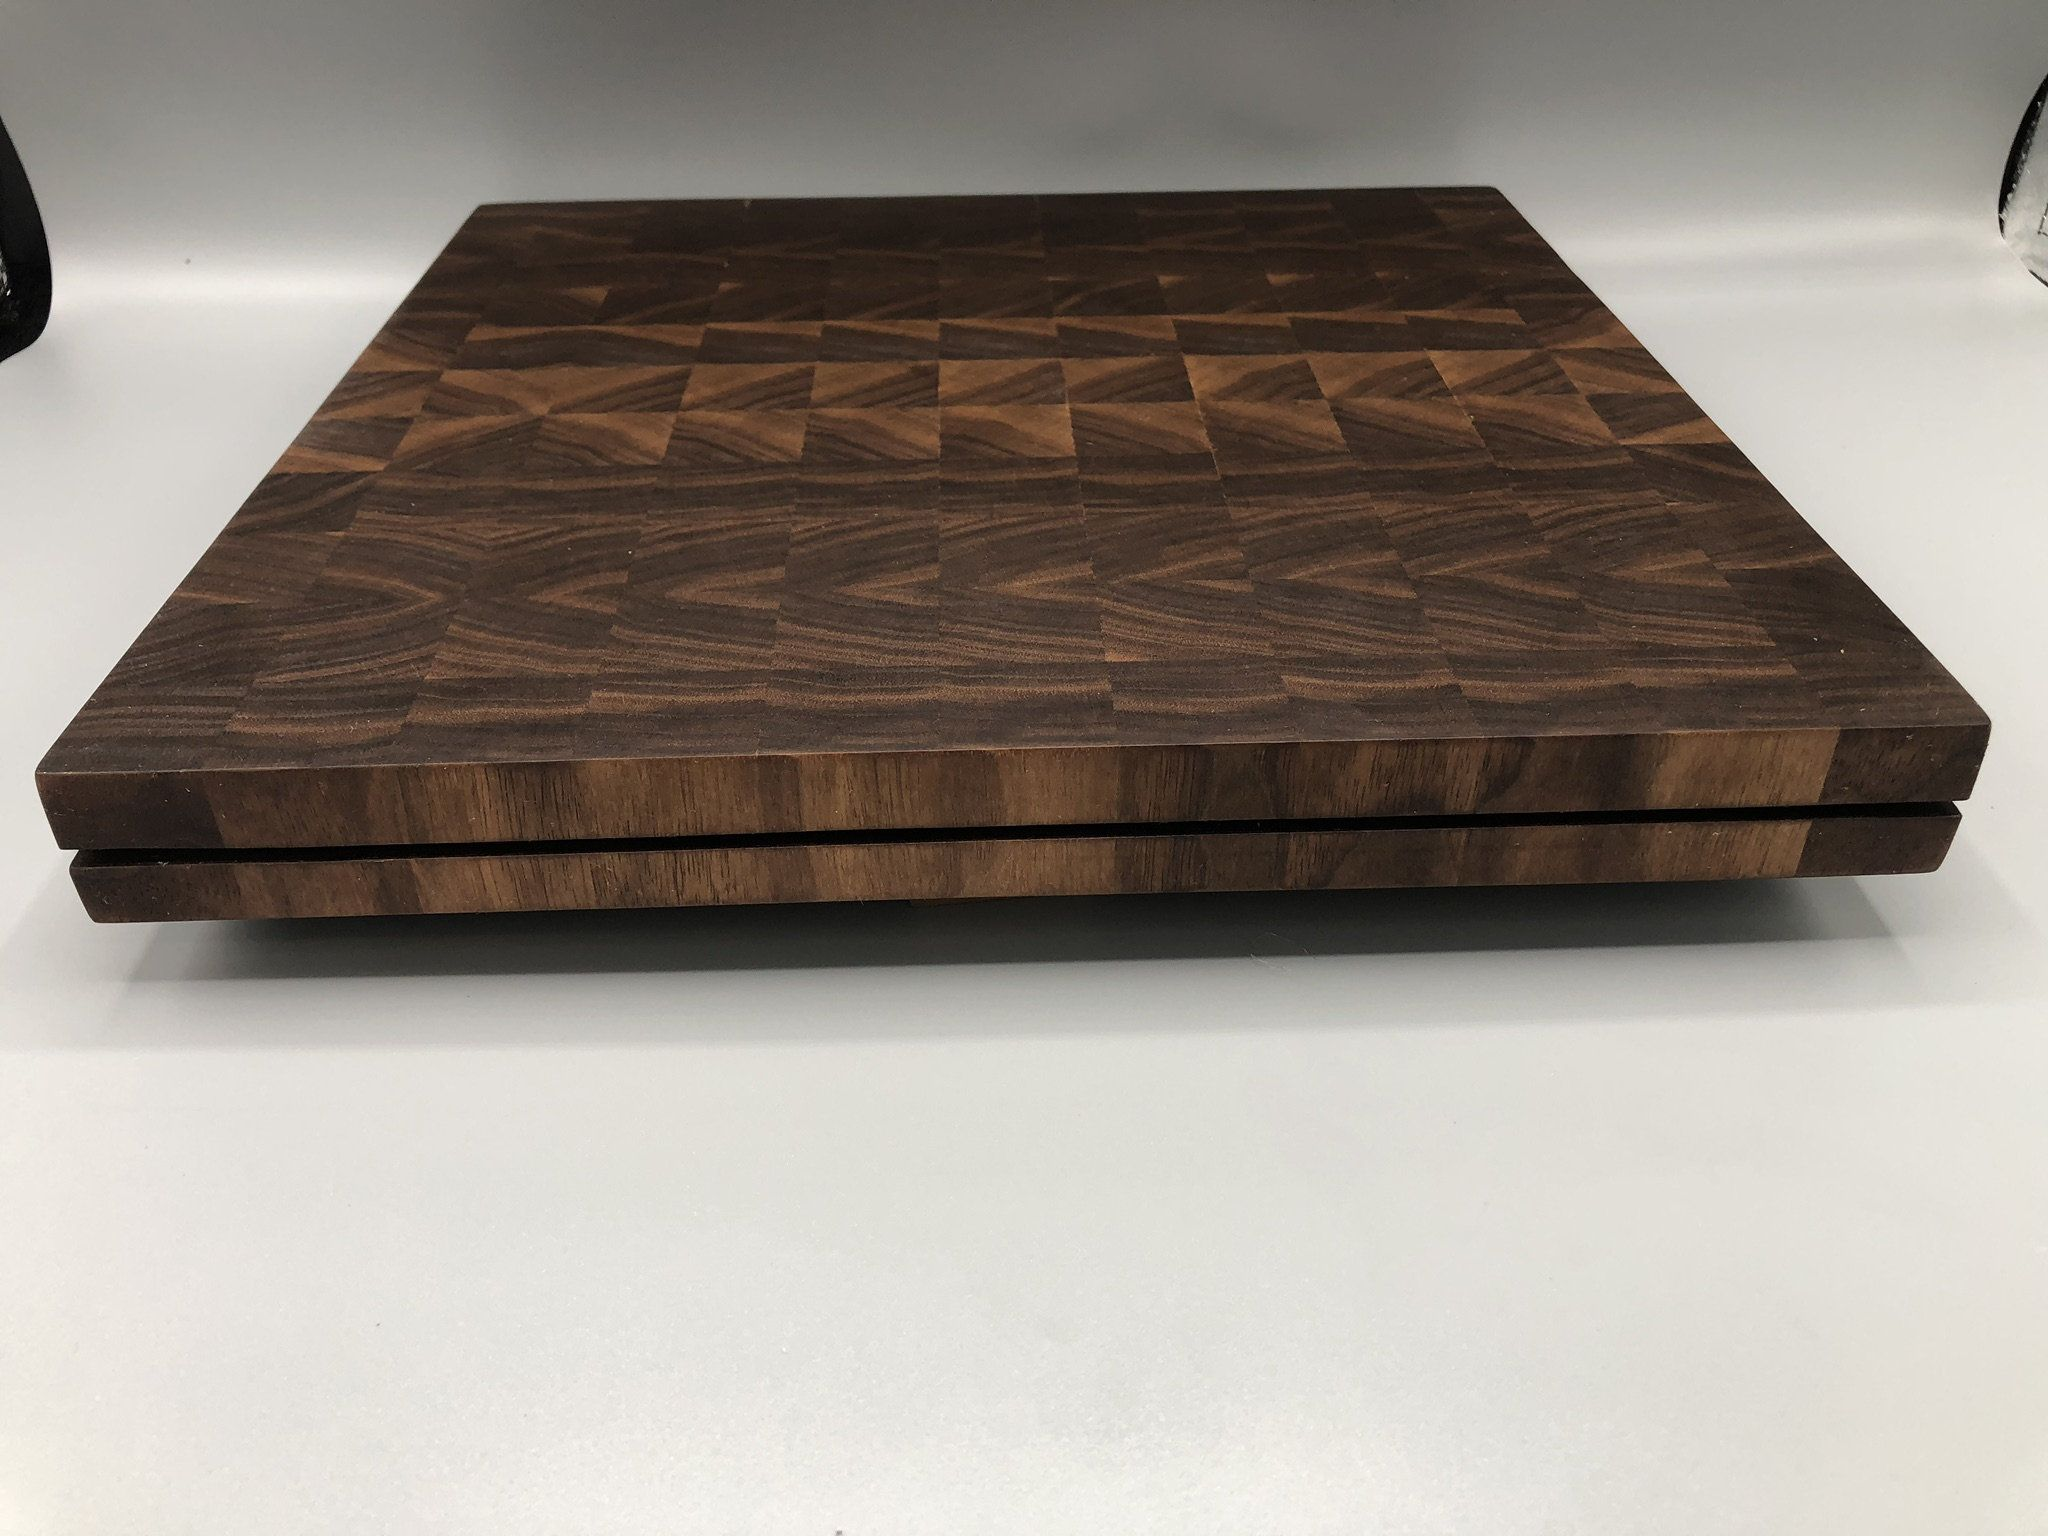 Unique personalized end grain cutting board butchers block made from wood